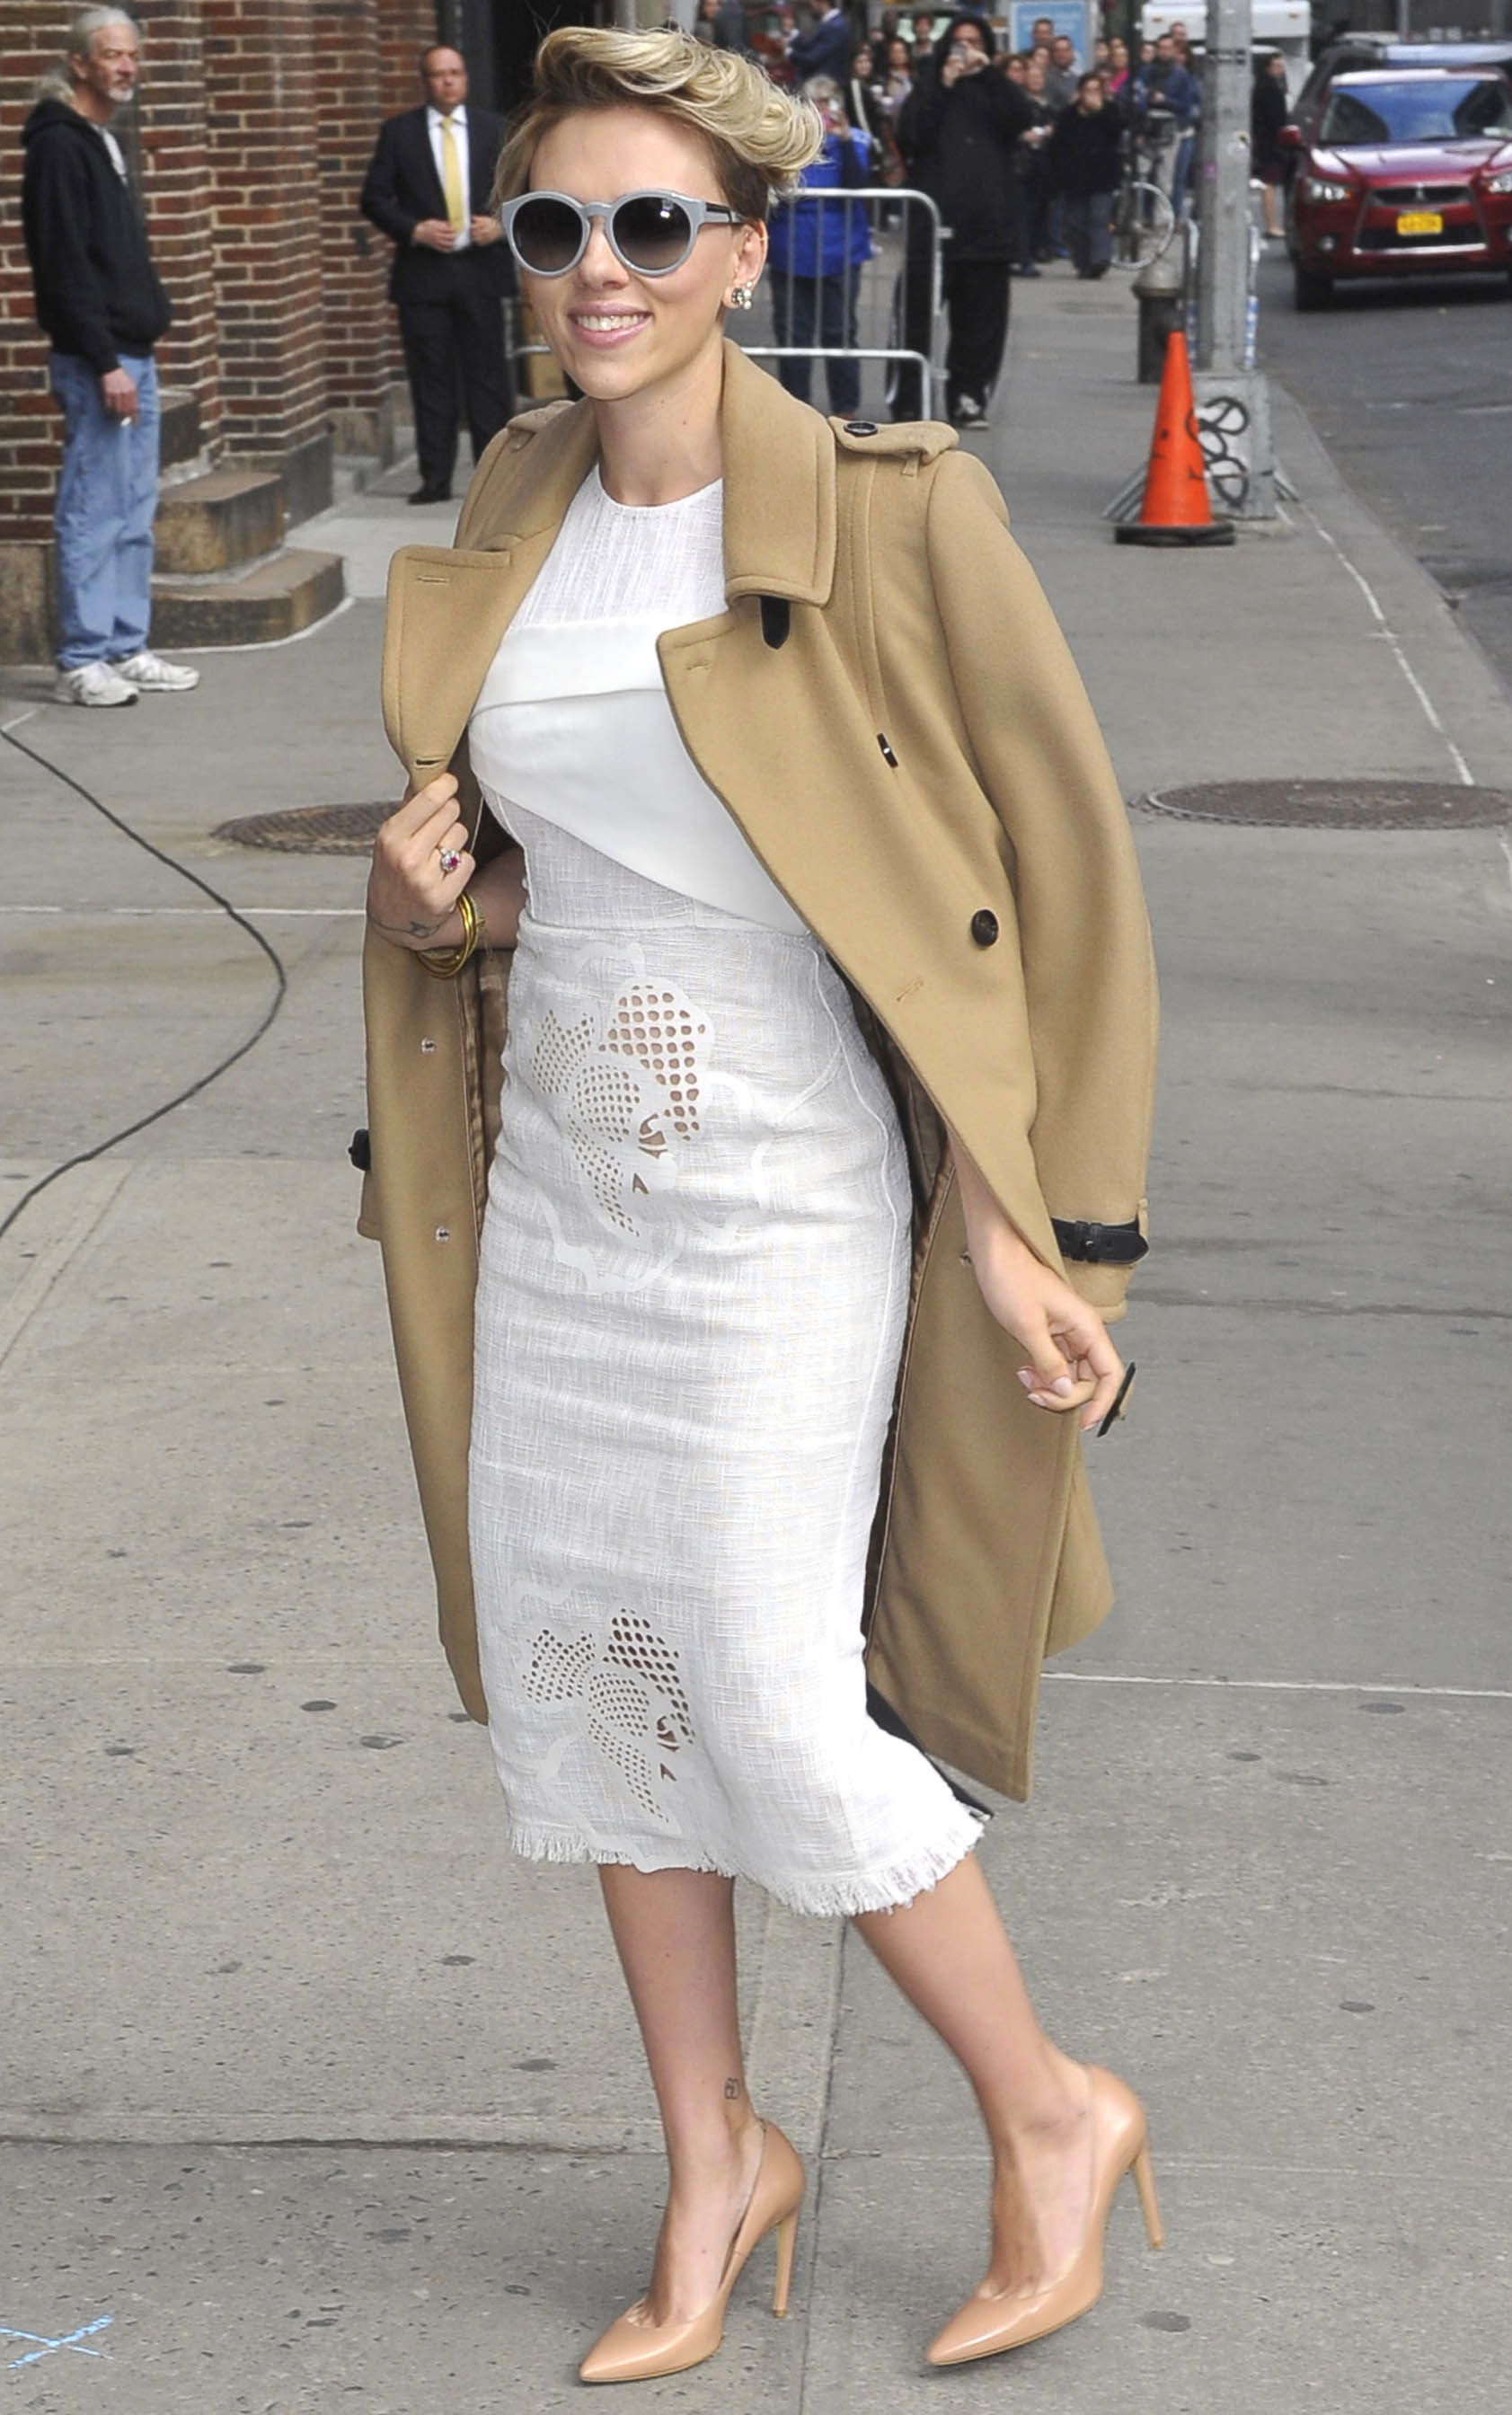 Celebrity Sightings In New York City - April 27, 2015